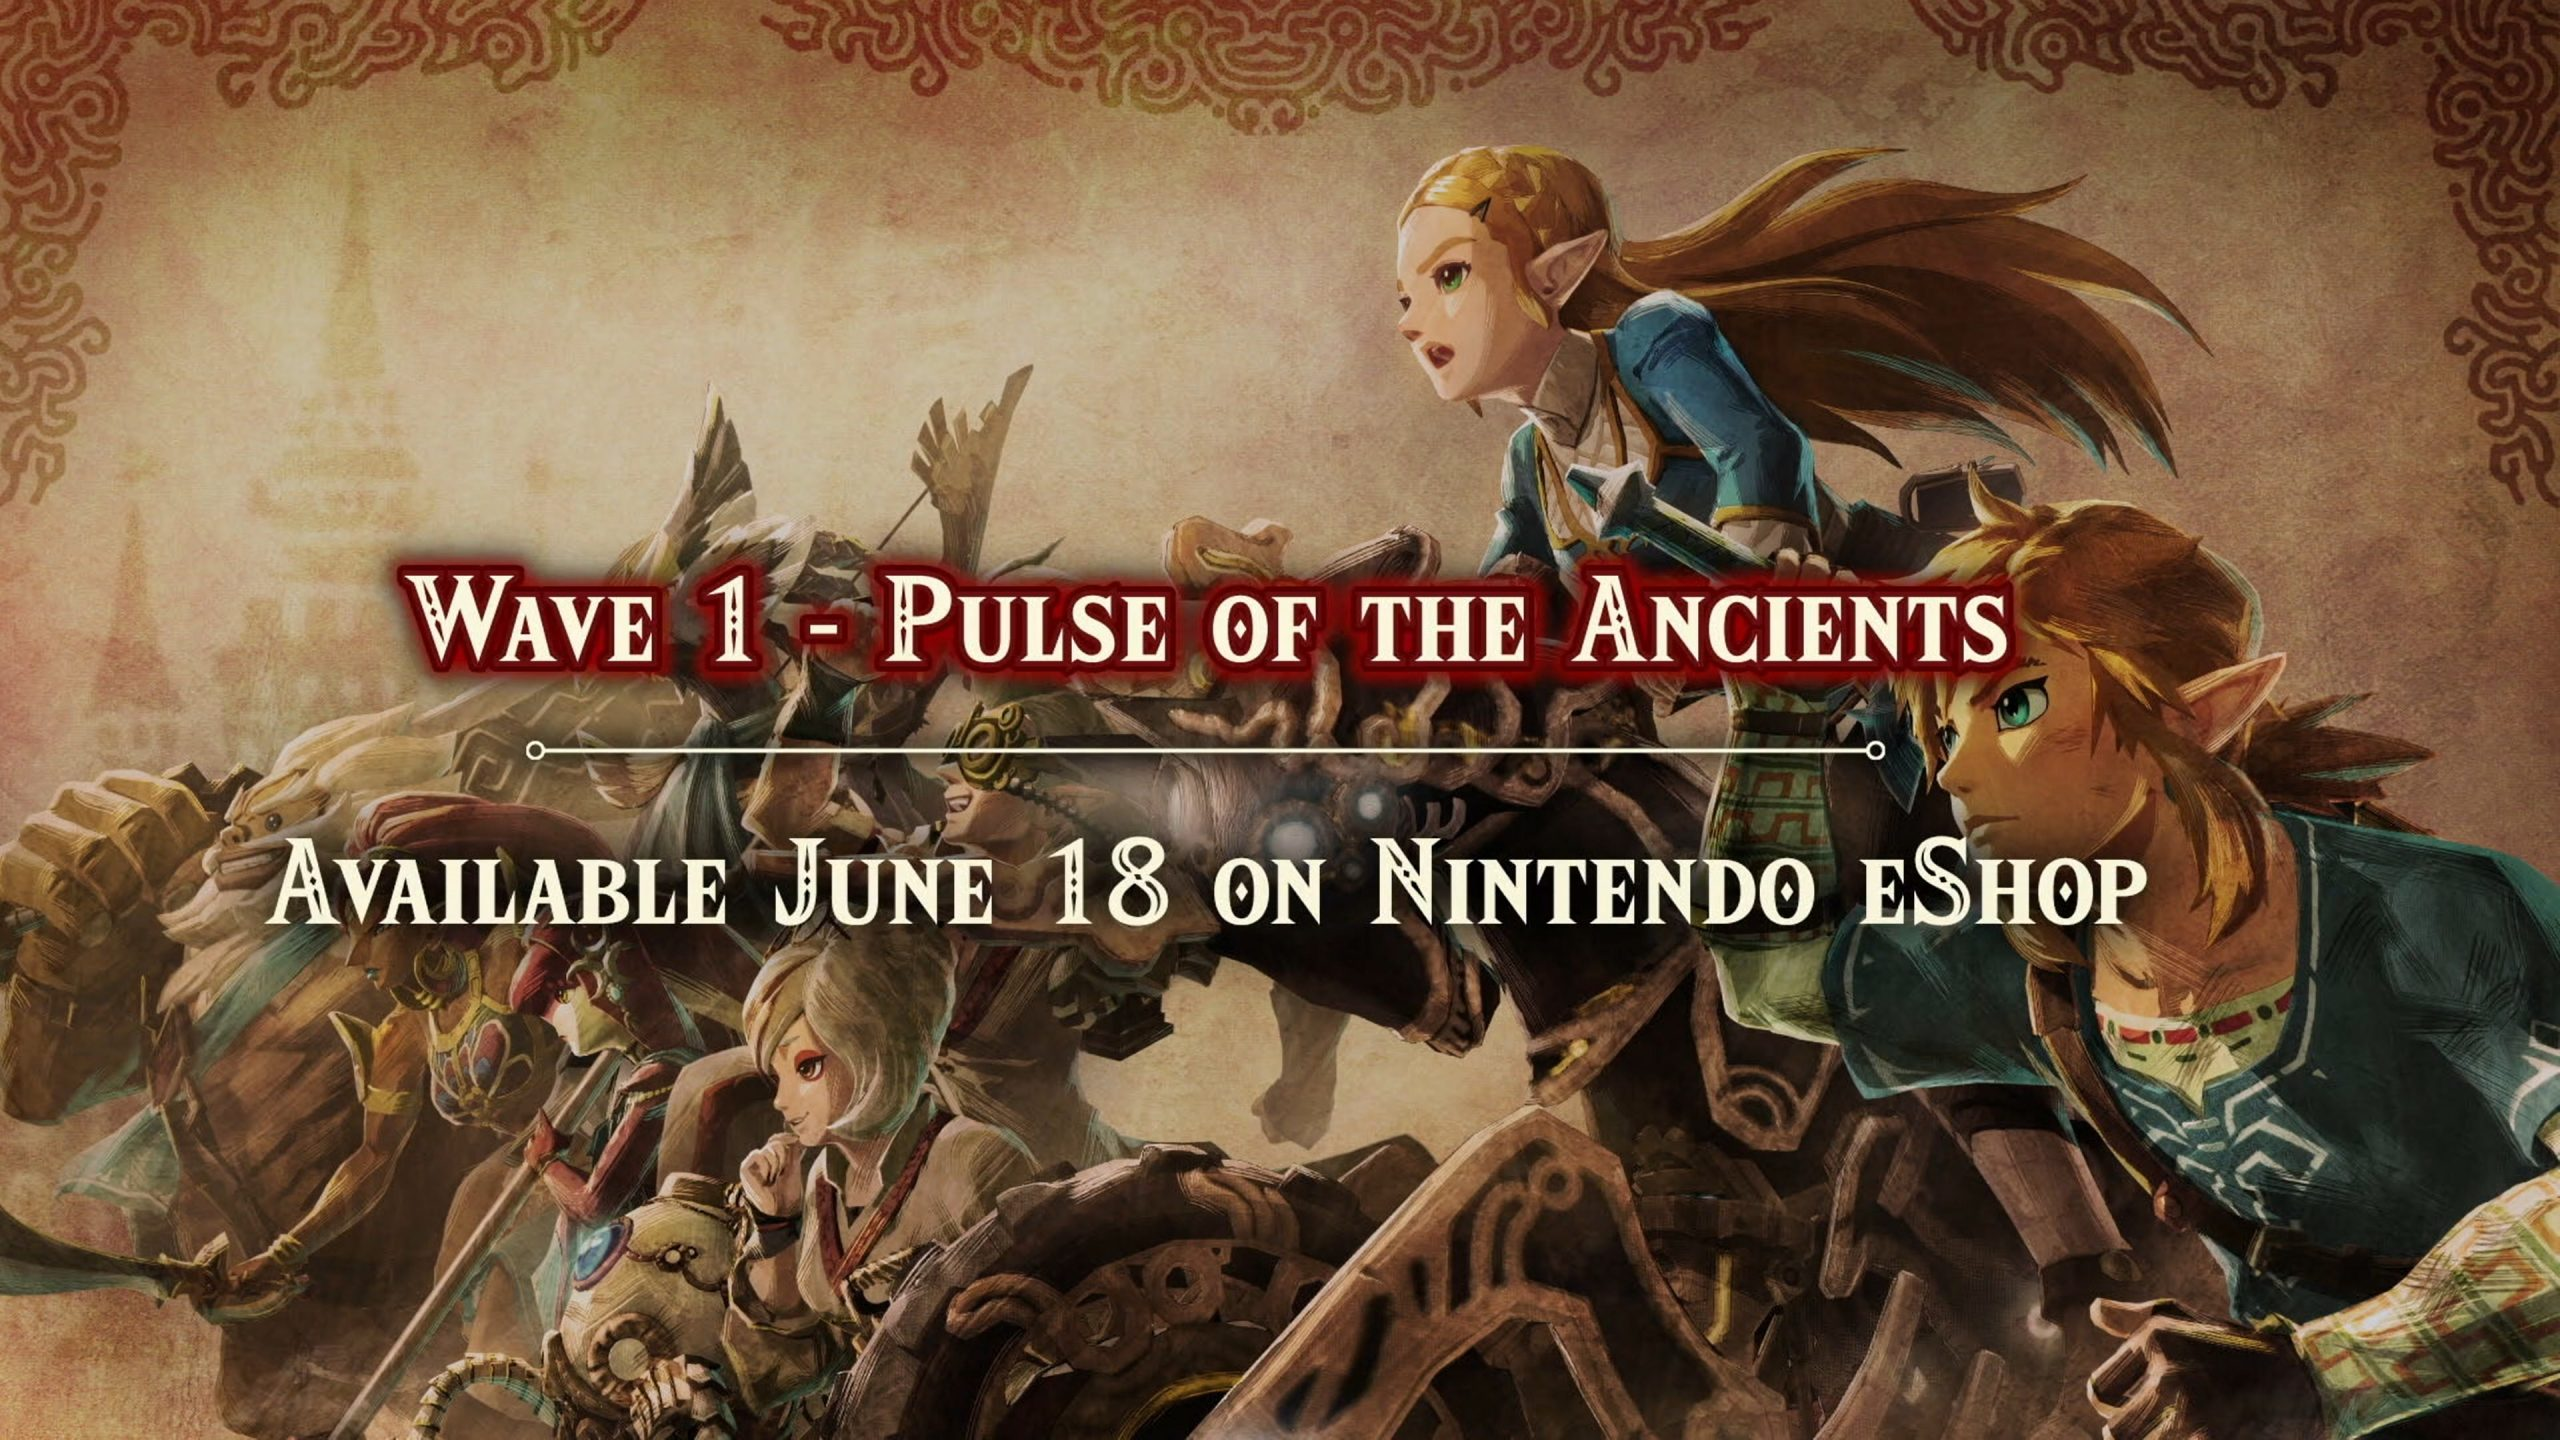 Hyrule Warriors: Age of Calamity - Wave 1 DLC: Pulse of the Ancients